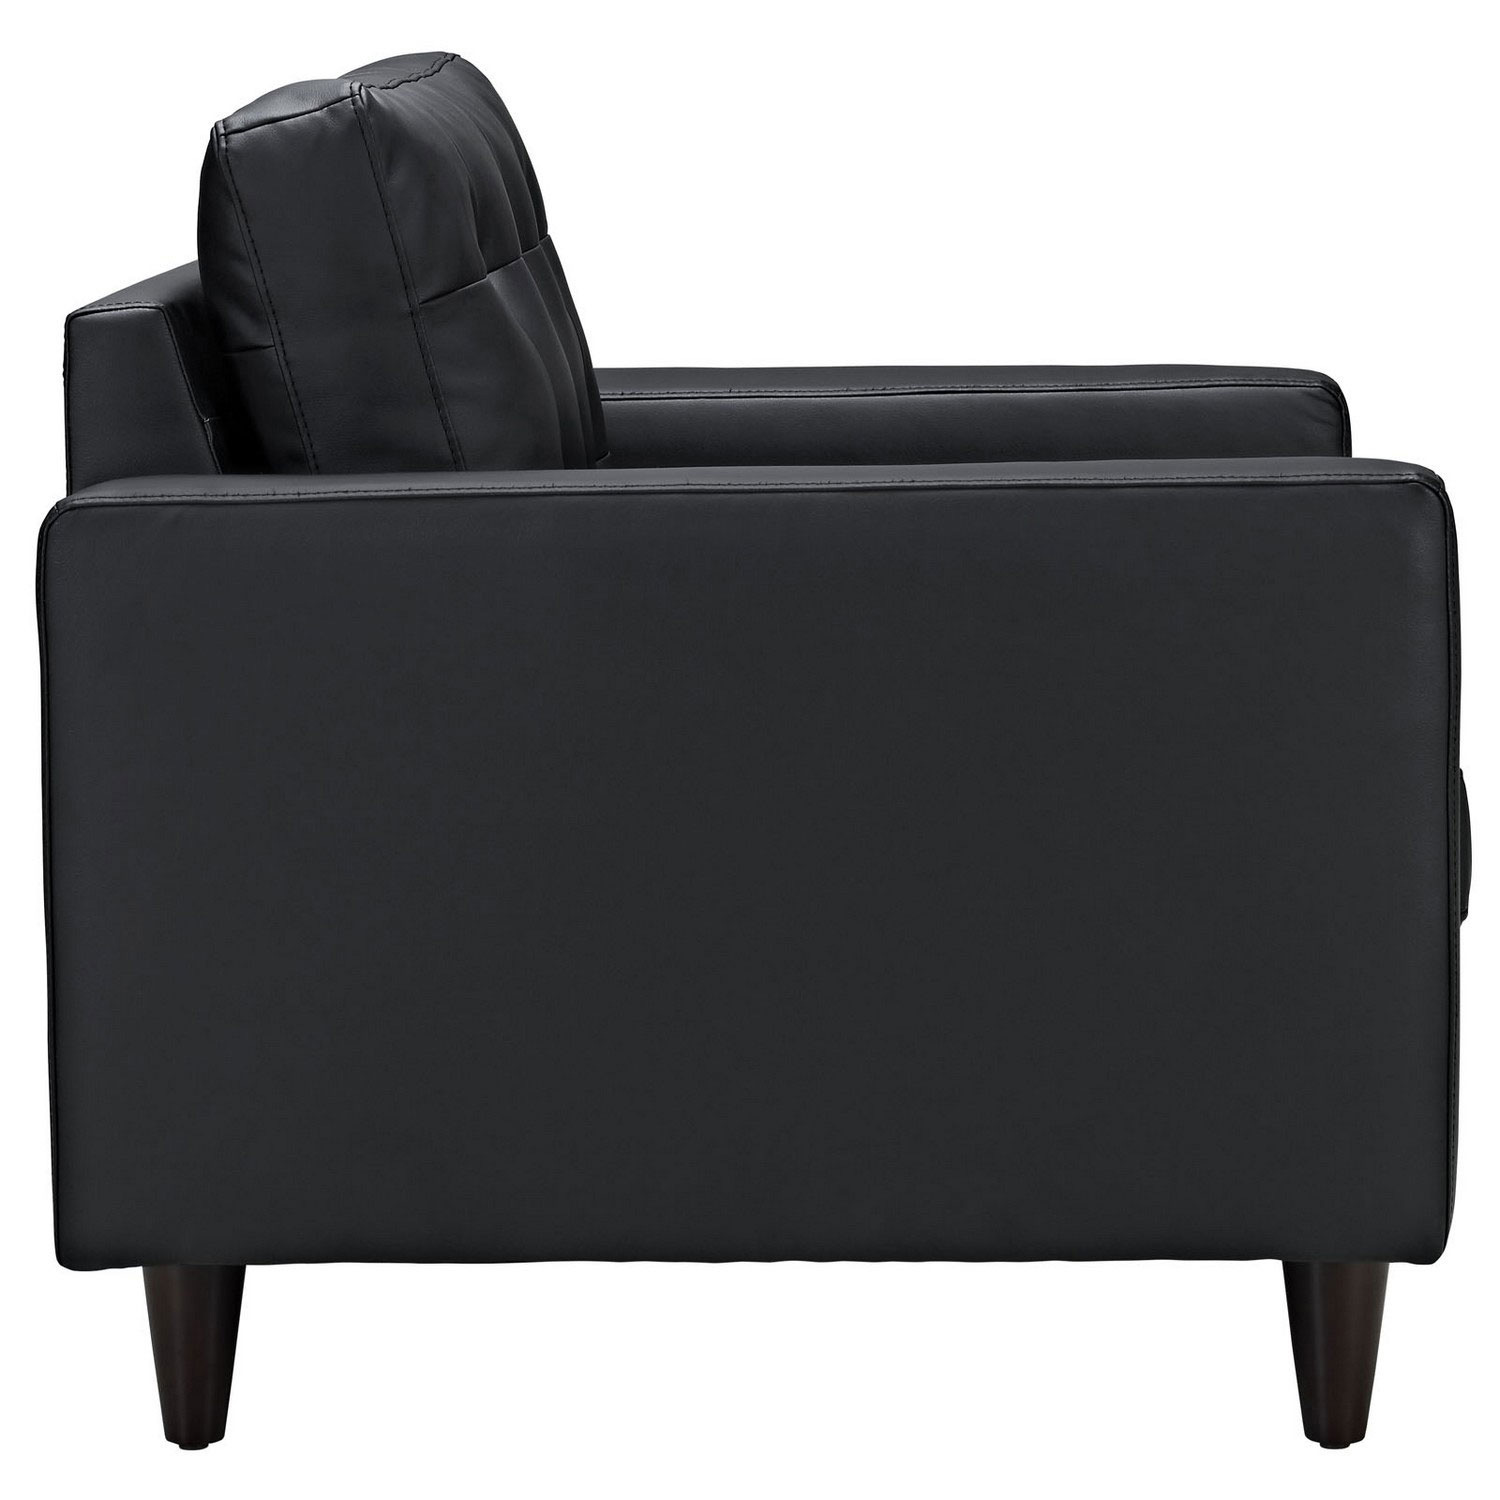 Modway Empress 2PC Sofa and Armchair Set - Black